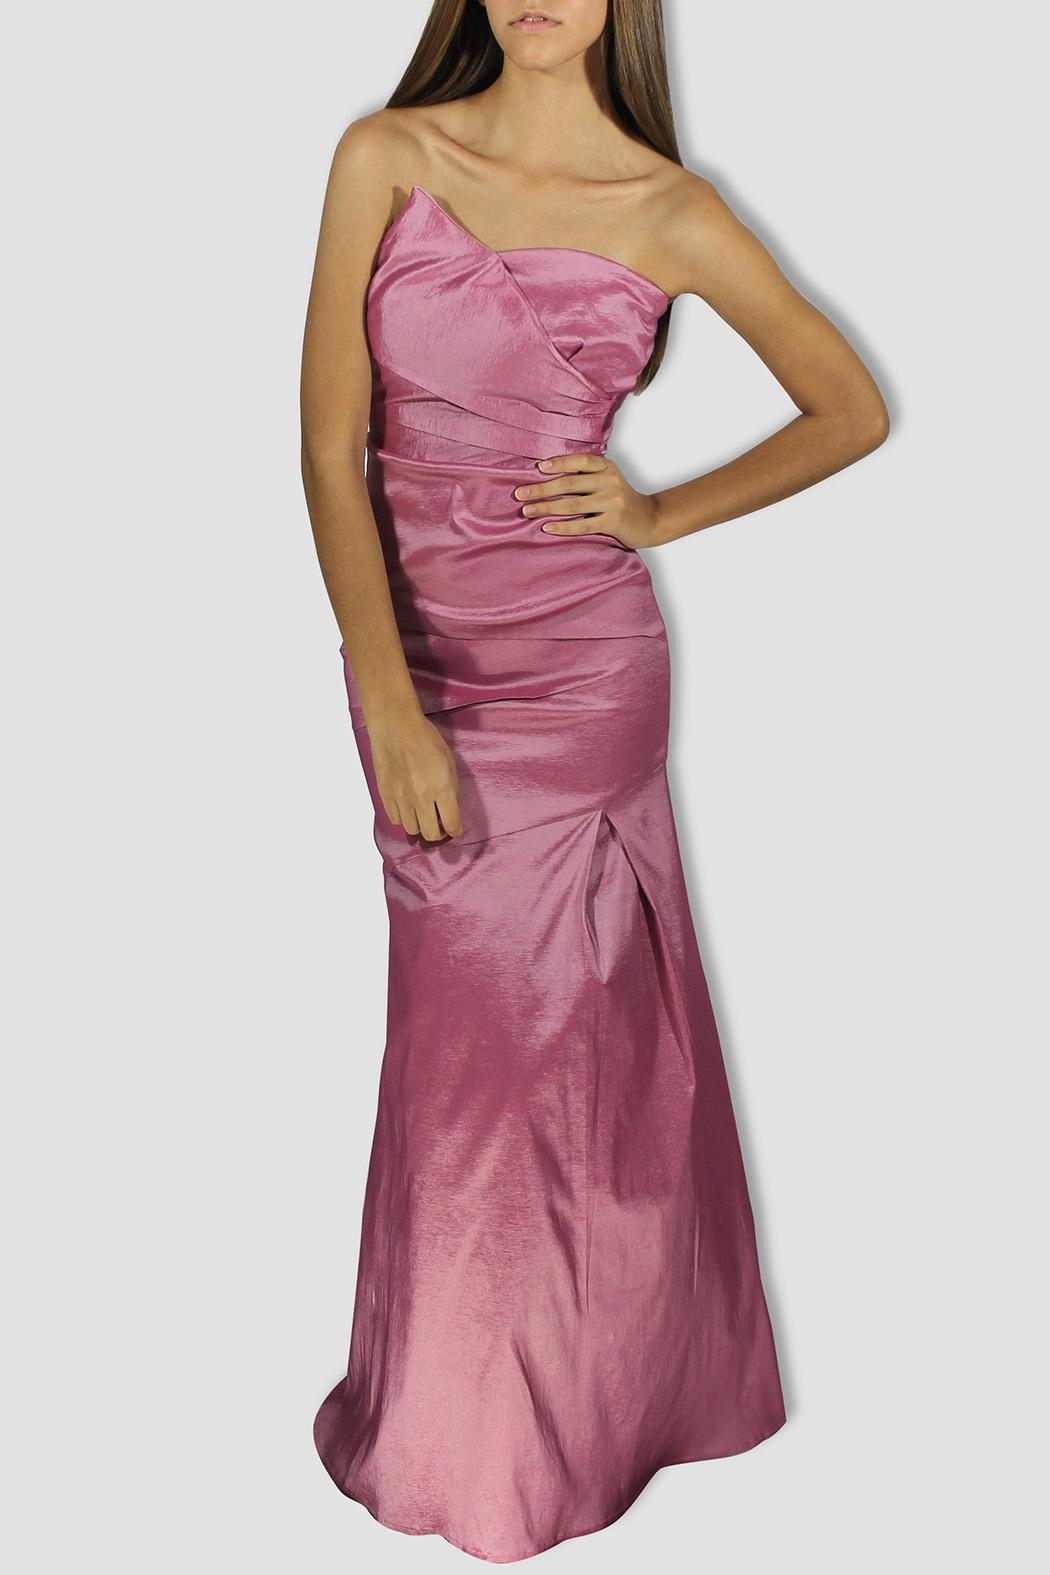 SoZu Draped Strapless Dress - Front Cropped Image